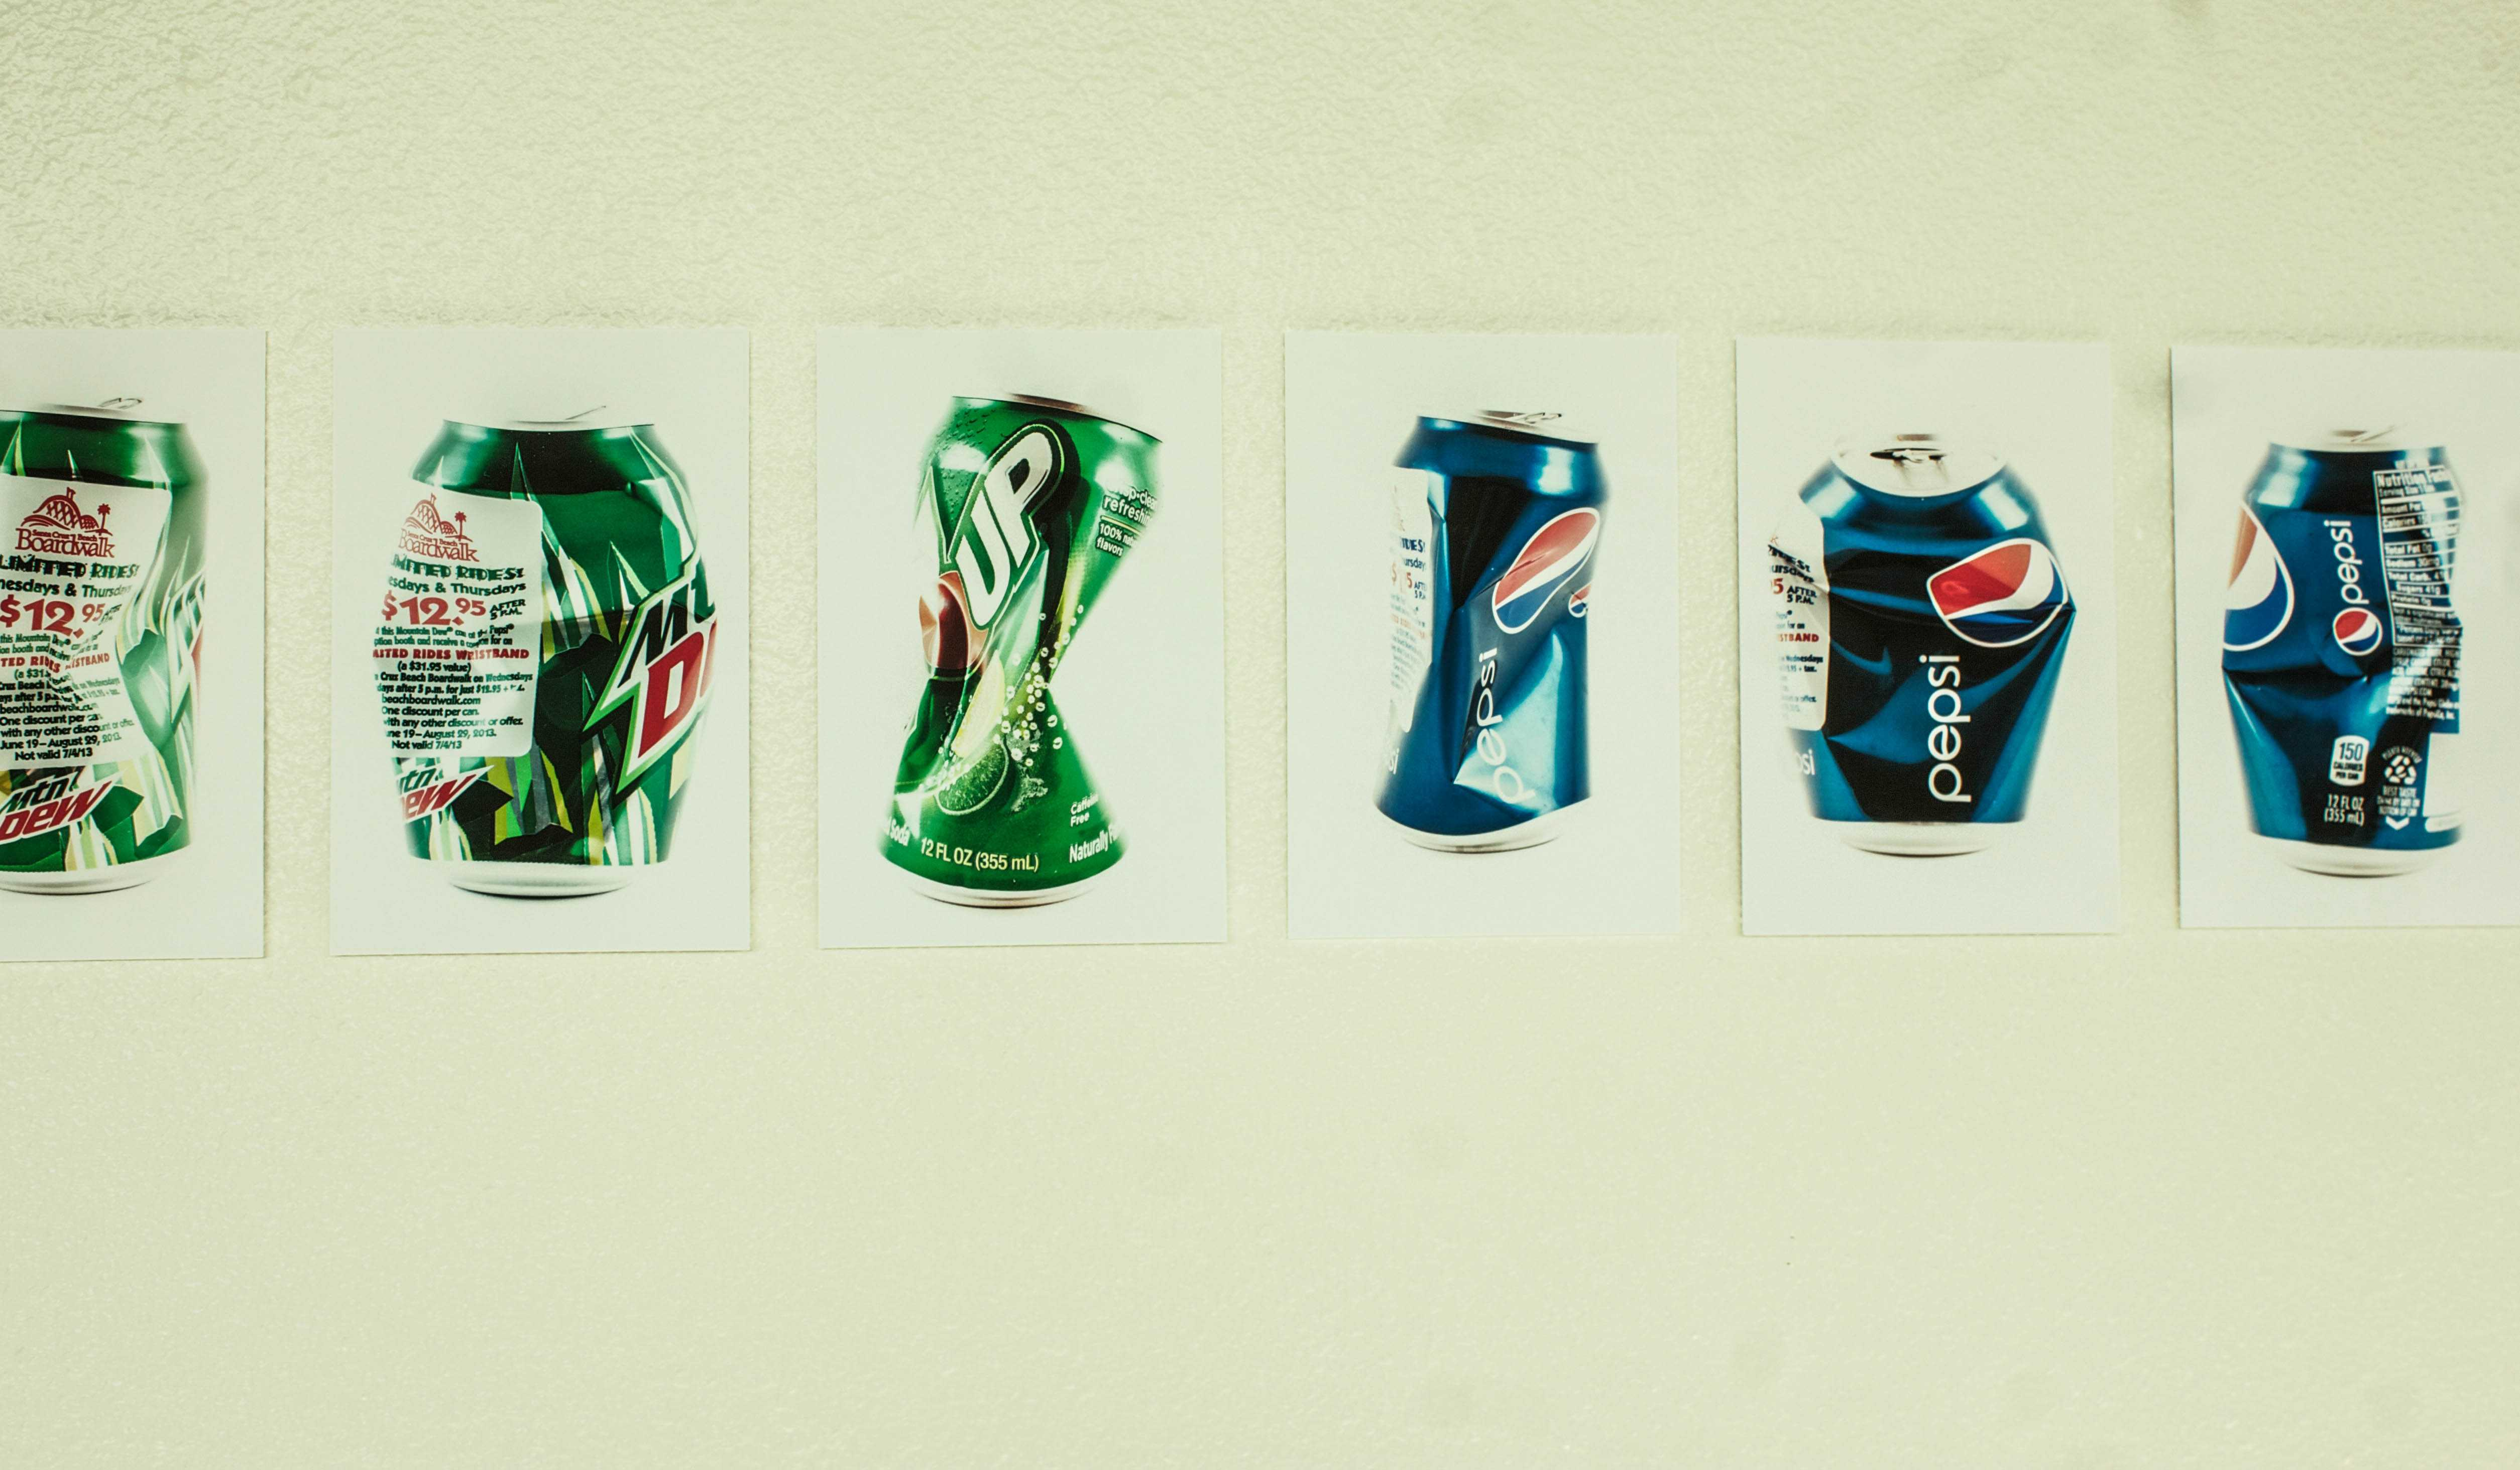 The Cans Make Us Face Consumption